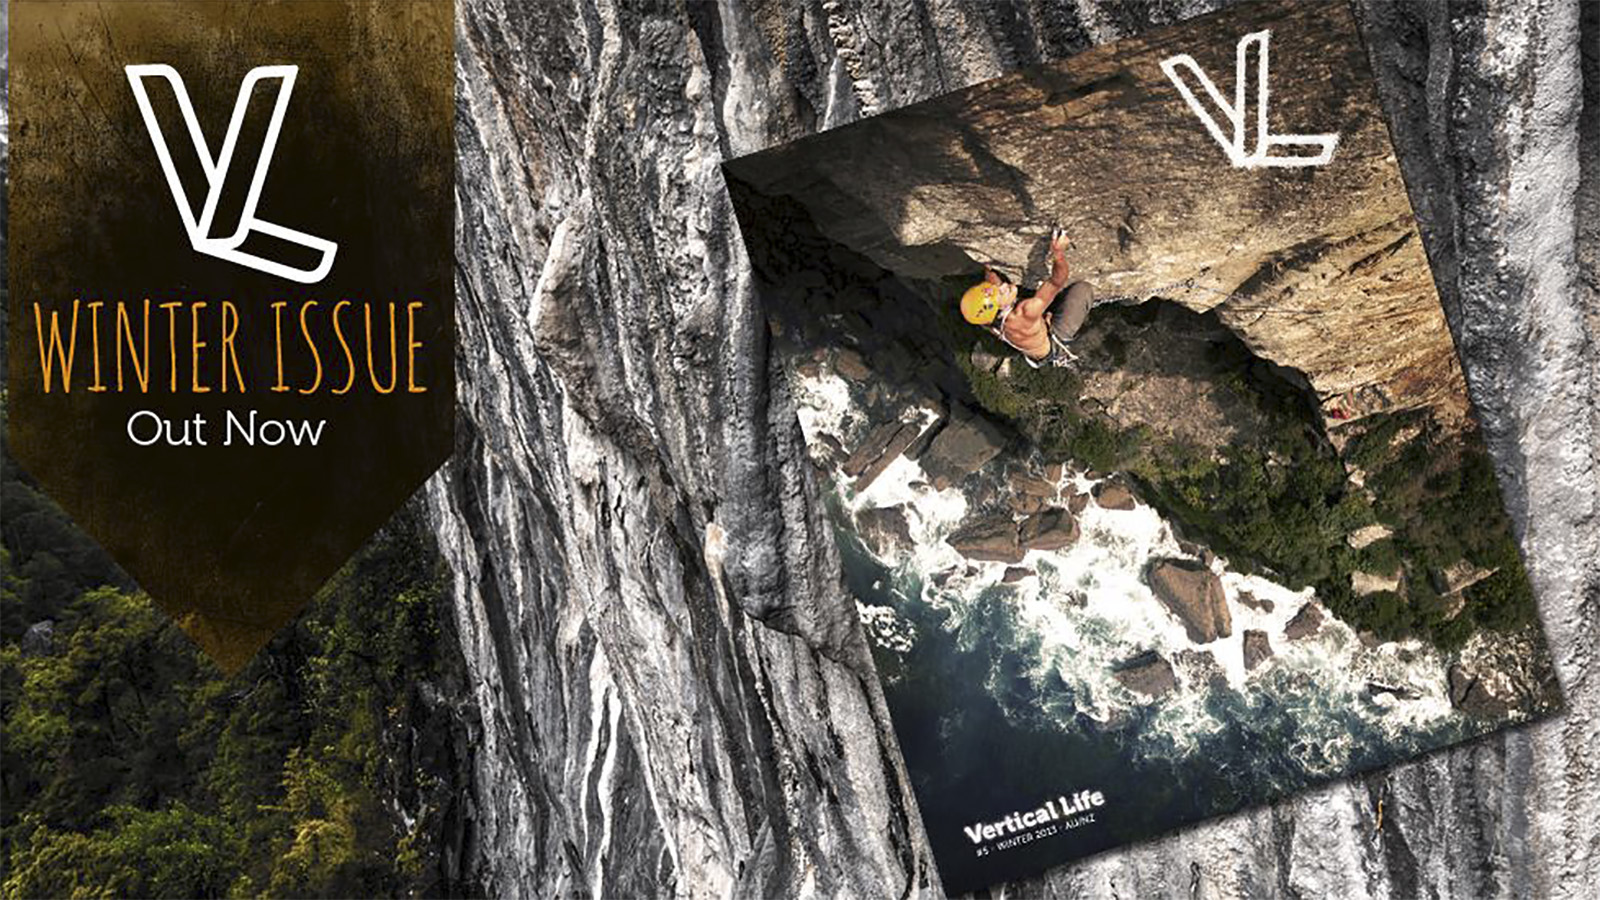 Vertical Life Magazine cover - March 2014